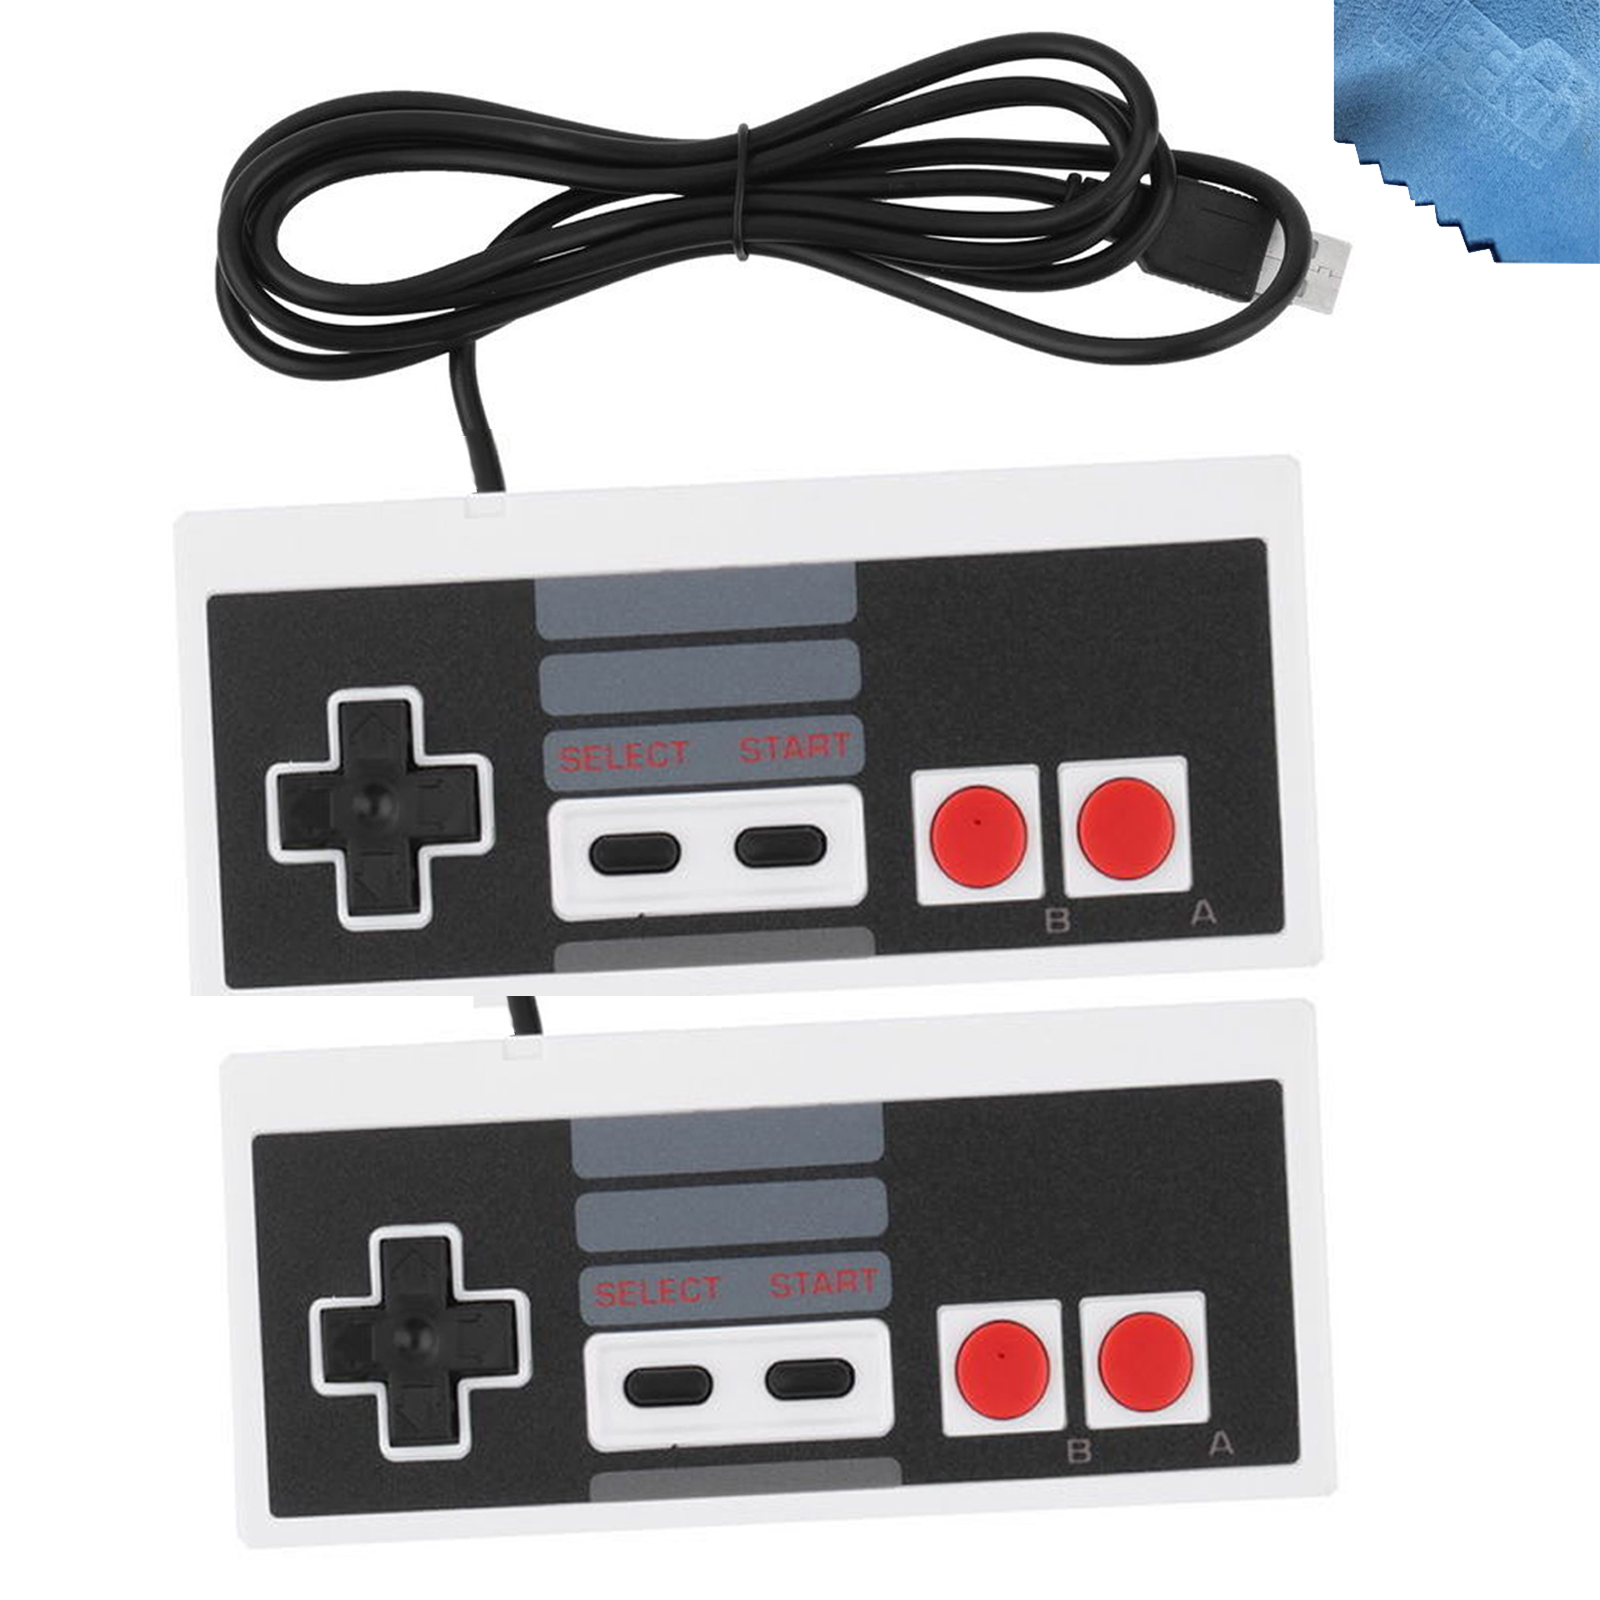 2 Pcs NES 8 Bit System USB Port Controller for PC Raspberry Pi (NOT For NES CLASSIC EDITION 2016)